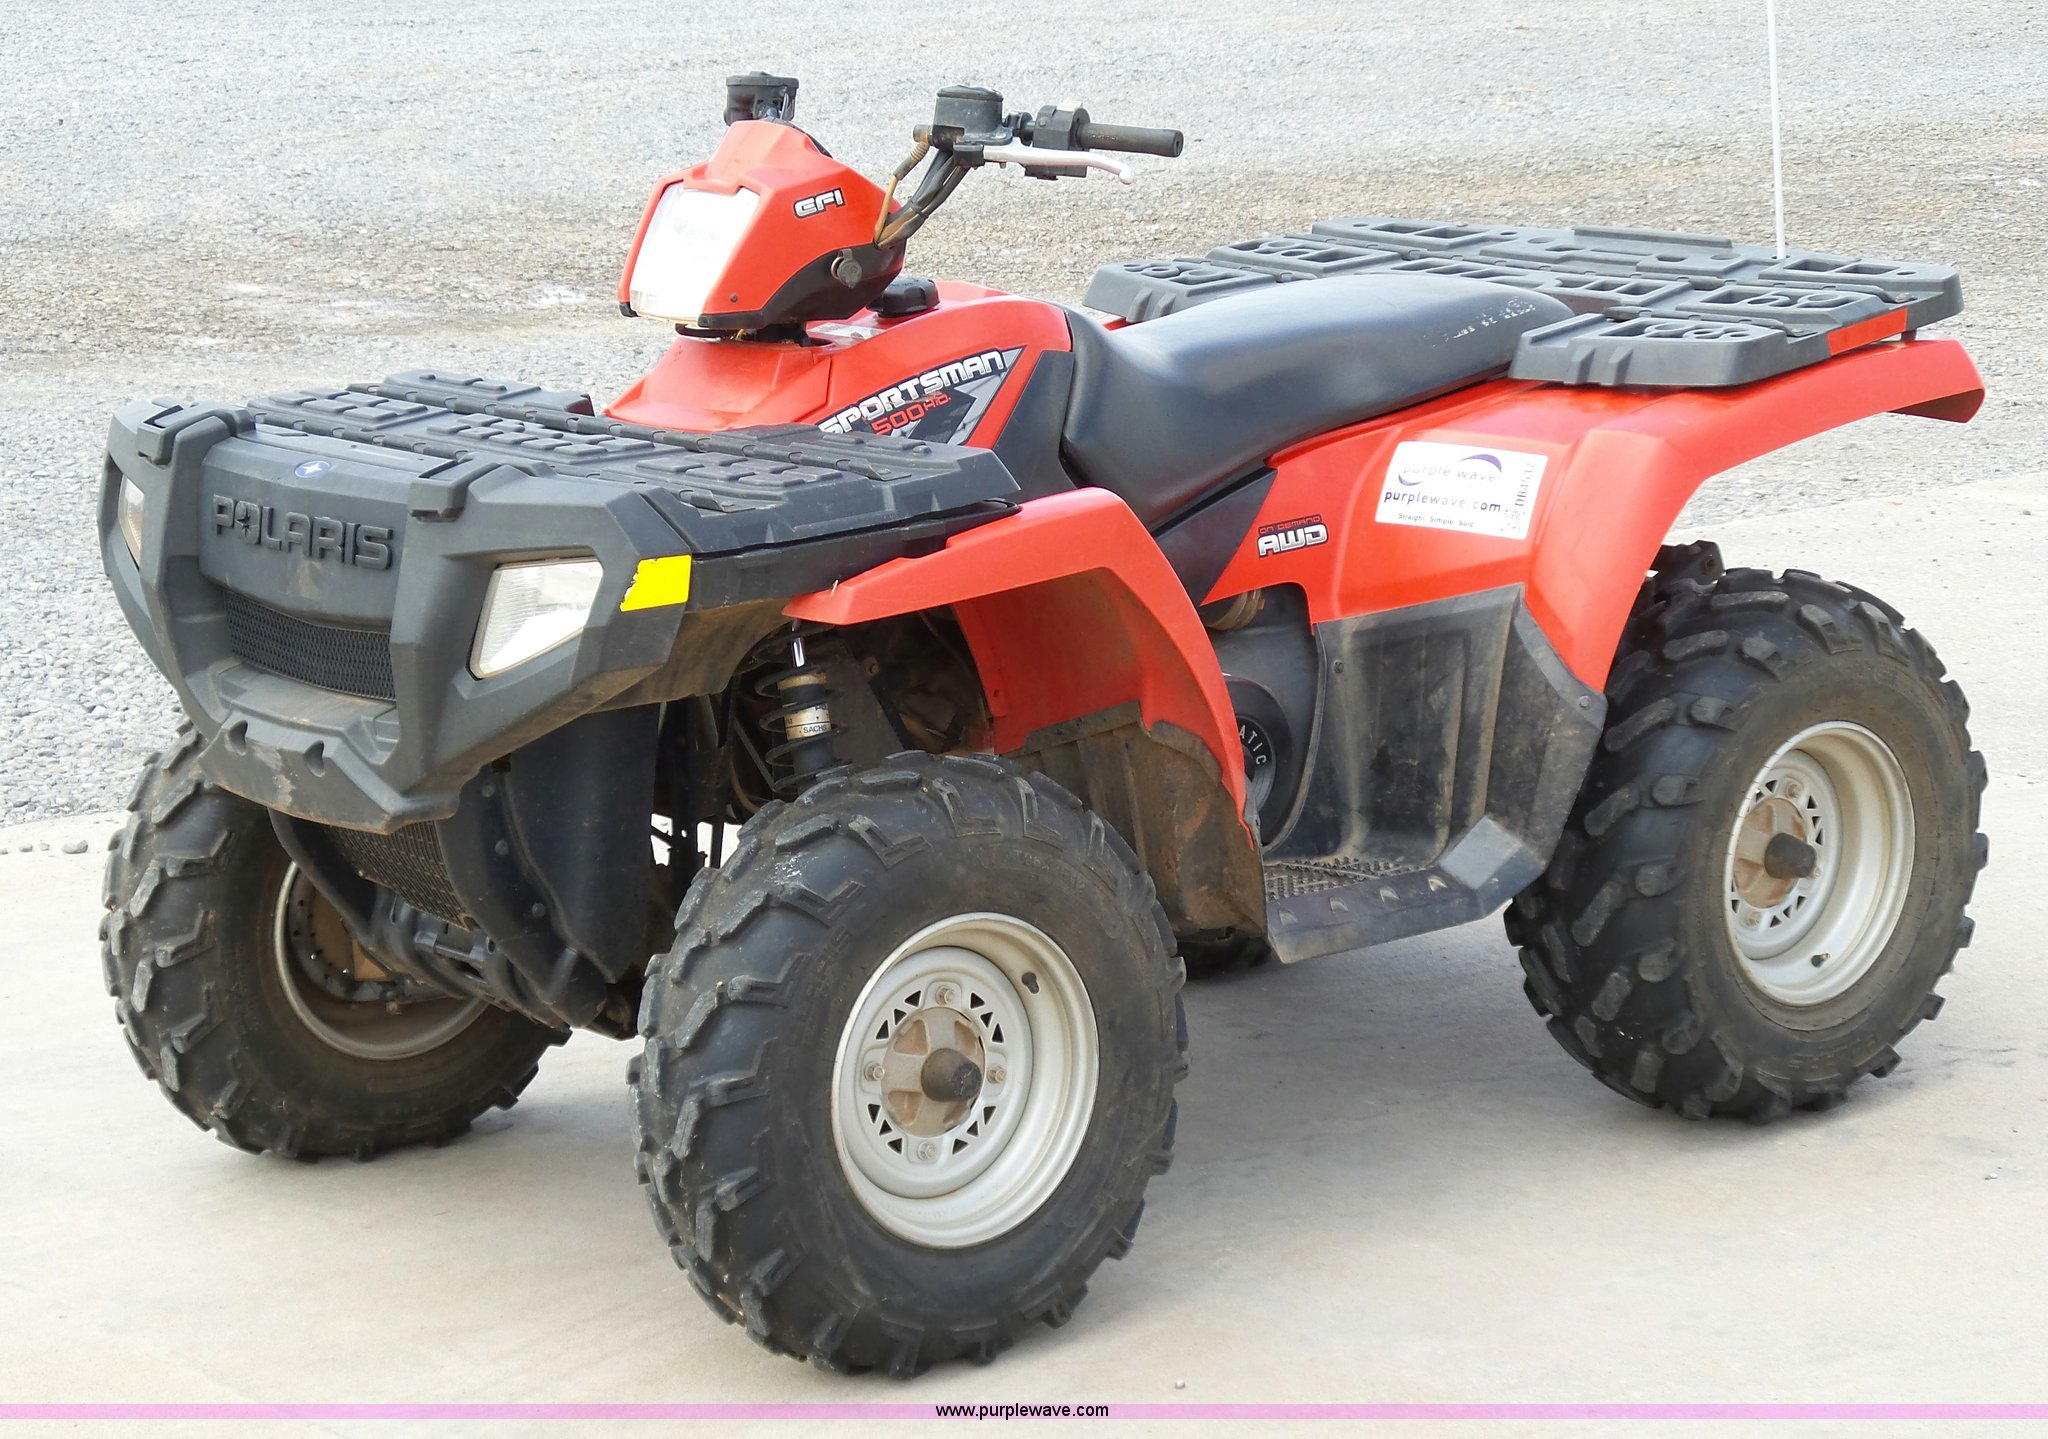 2008 polaris sportsman 500 atv item db4537 sold. Black Bedroom Furniture Sets. Home Design Ideas